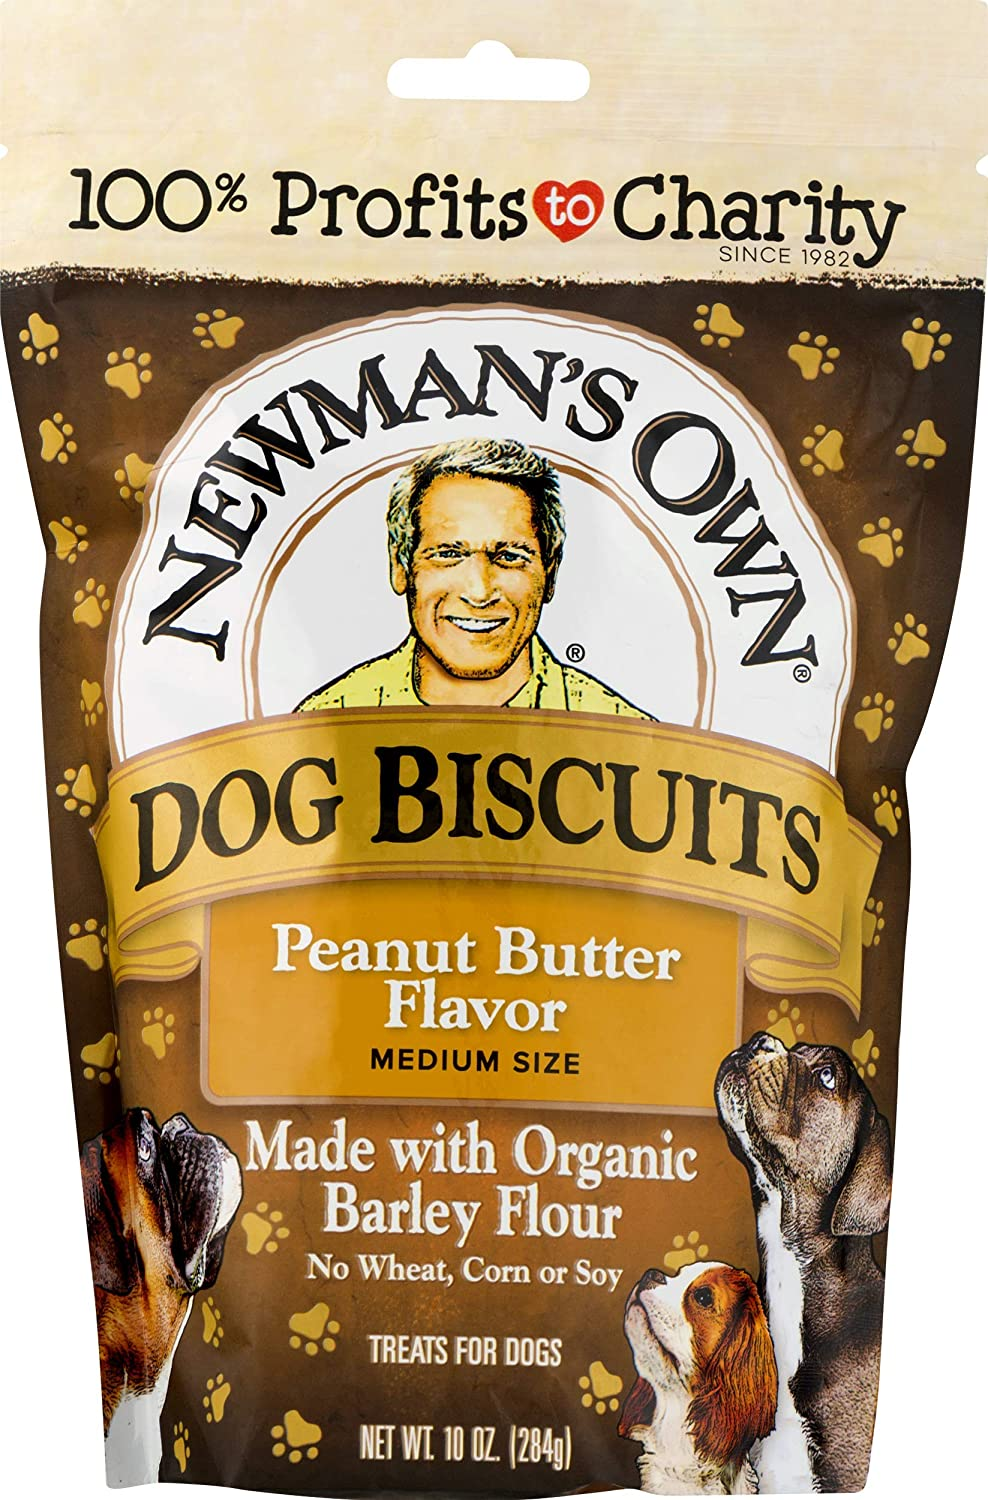 Newman's Own Dog Biscuits, 10-oz. (Pack of 6), Peanut Butter